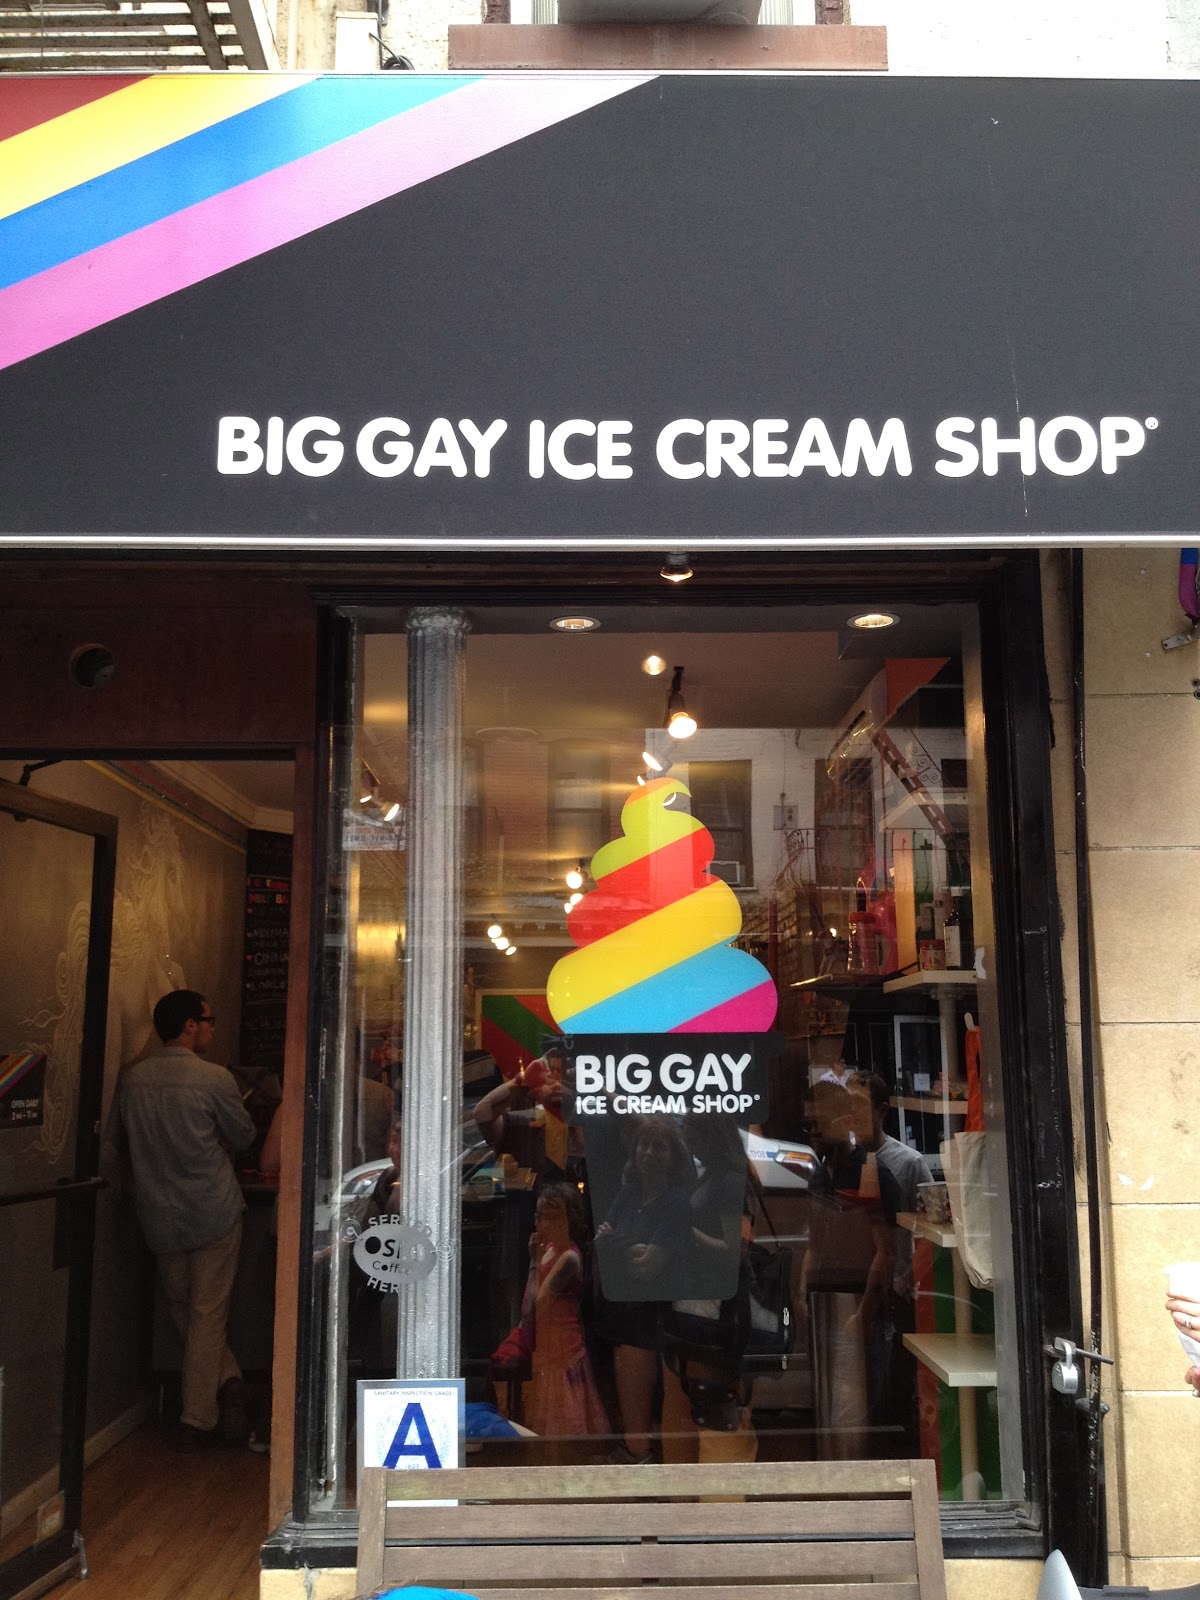 The big gay ice cream shop